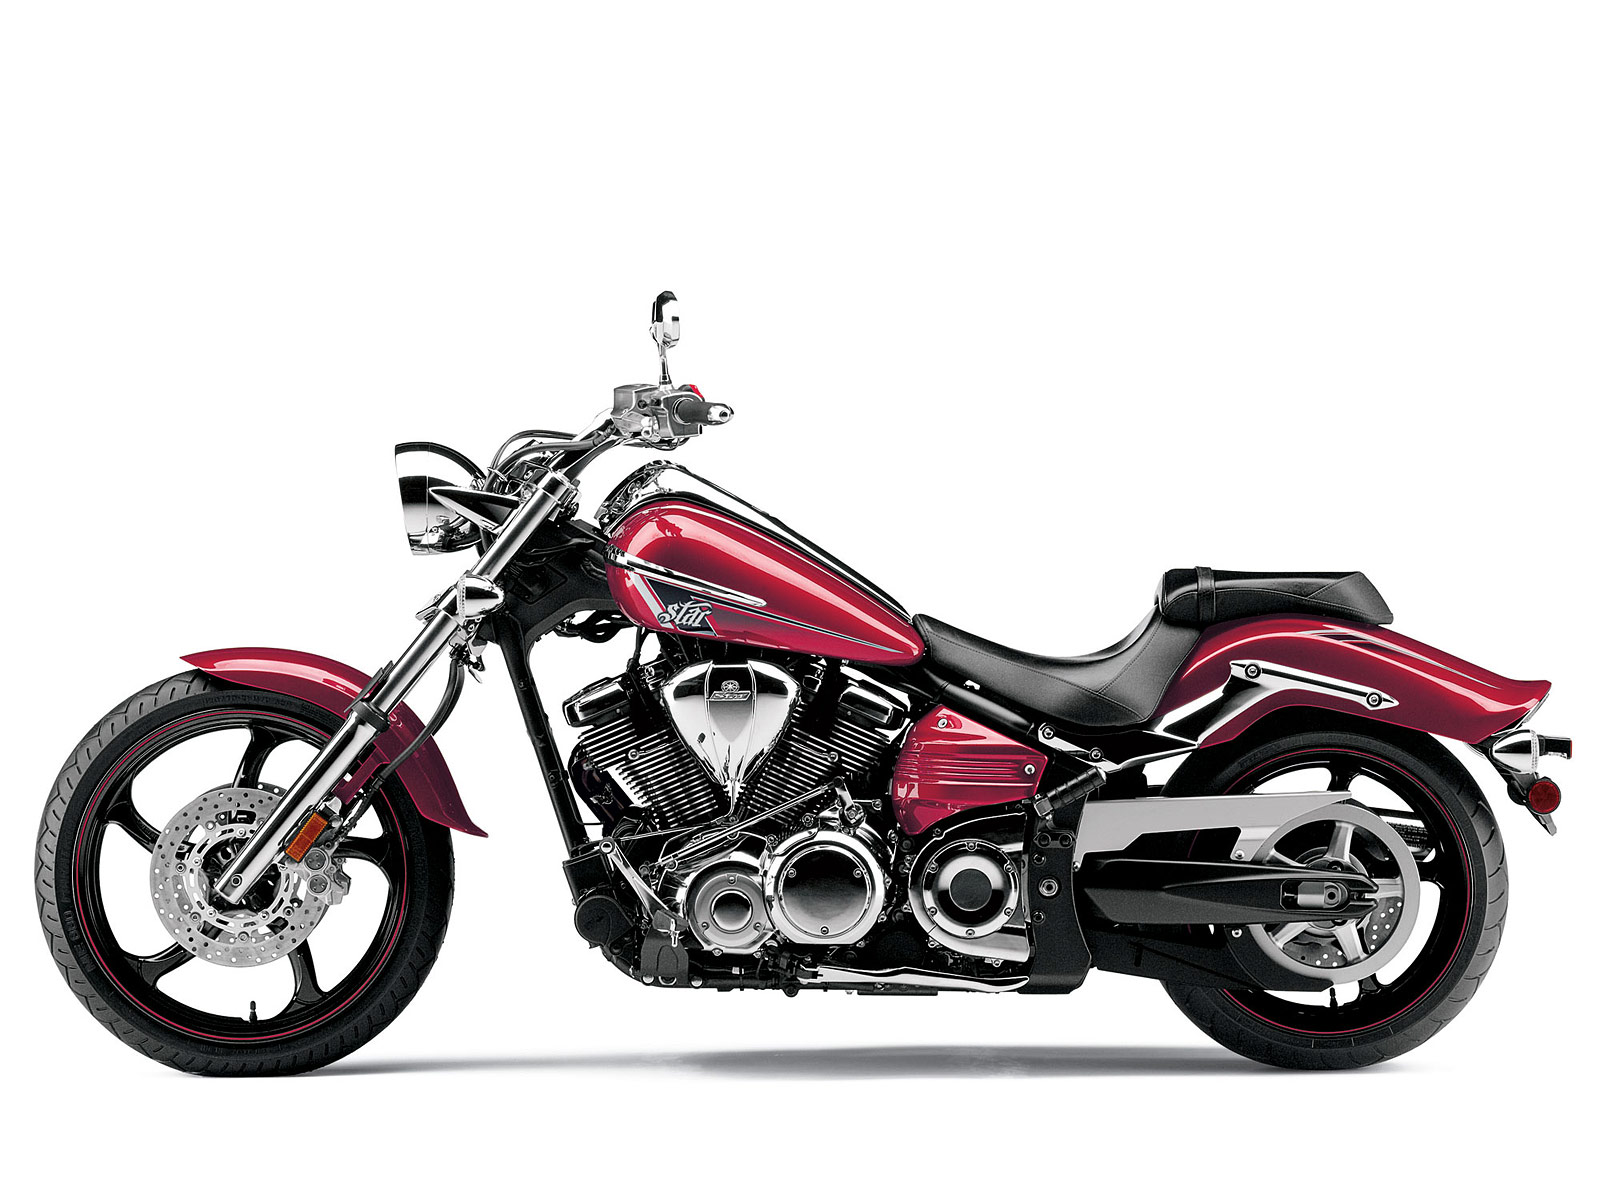 2013 Yamaha Raider S   USA  Canadian Specifications  pictures